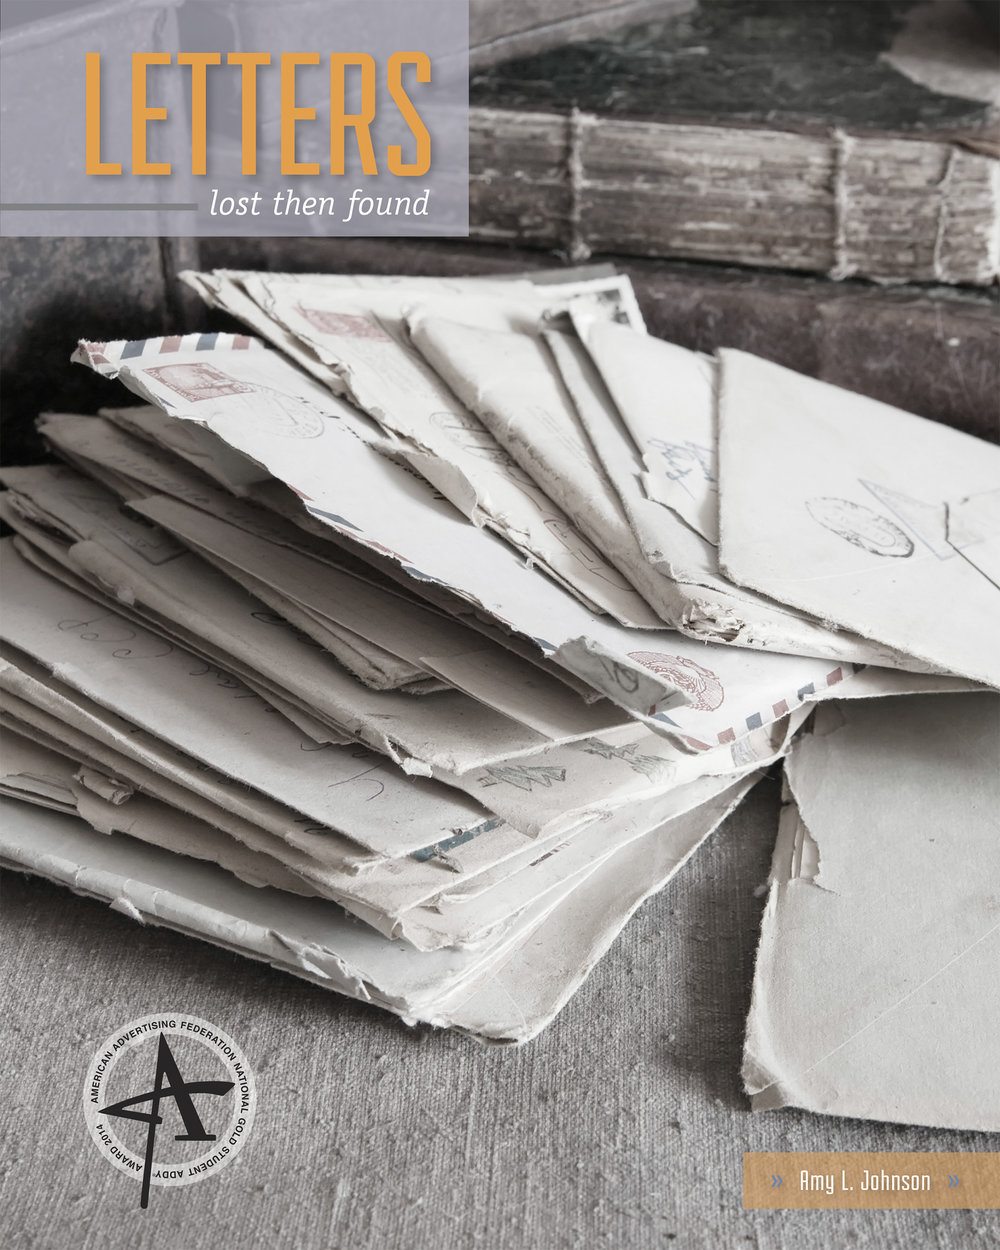 LETTERS Book Cover.jpg